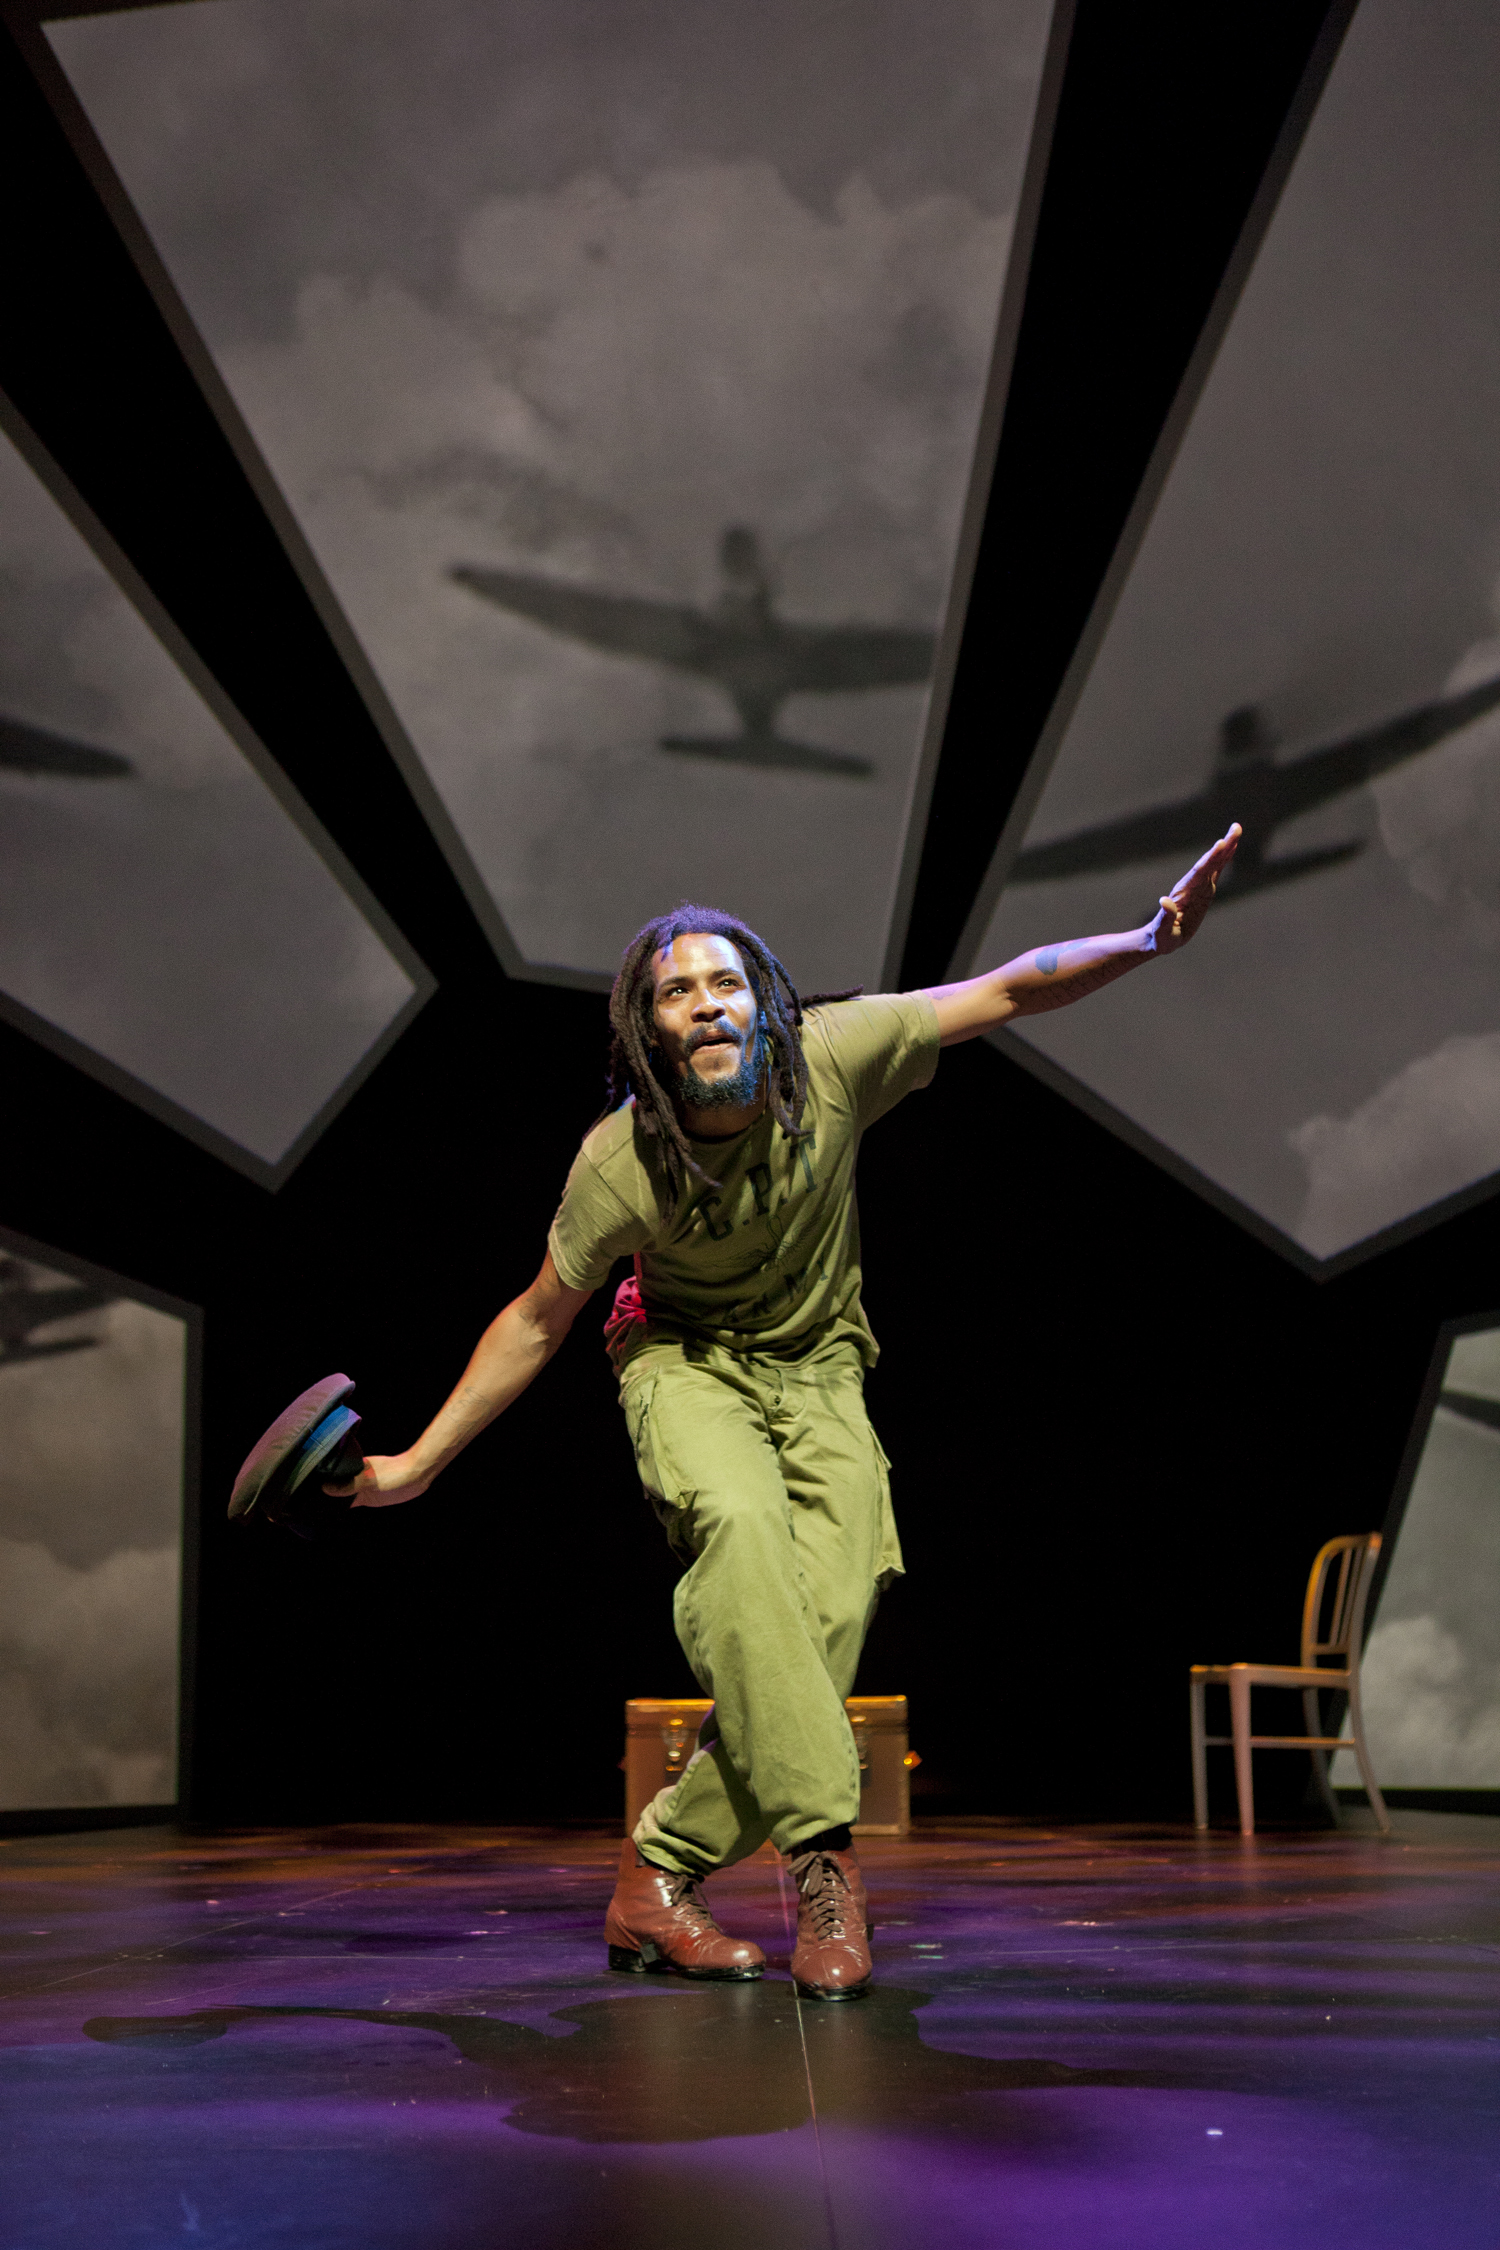 "Image of dancer Omar Edward on the set of the play ""Fly"" at Ford's. Edwards wears a green military jumpsuit and has his hair in dreadlocks. Behind him are multiple projections of flying Tuskegee aircraft. Edward is posed on one leg with his arms outstretched as if he is flying."